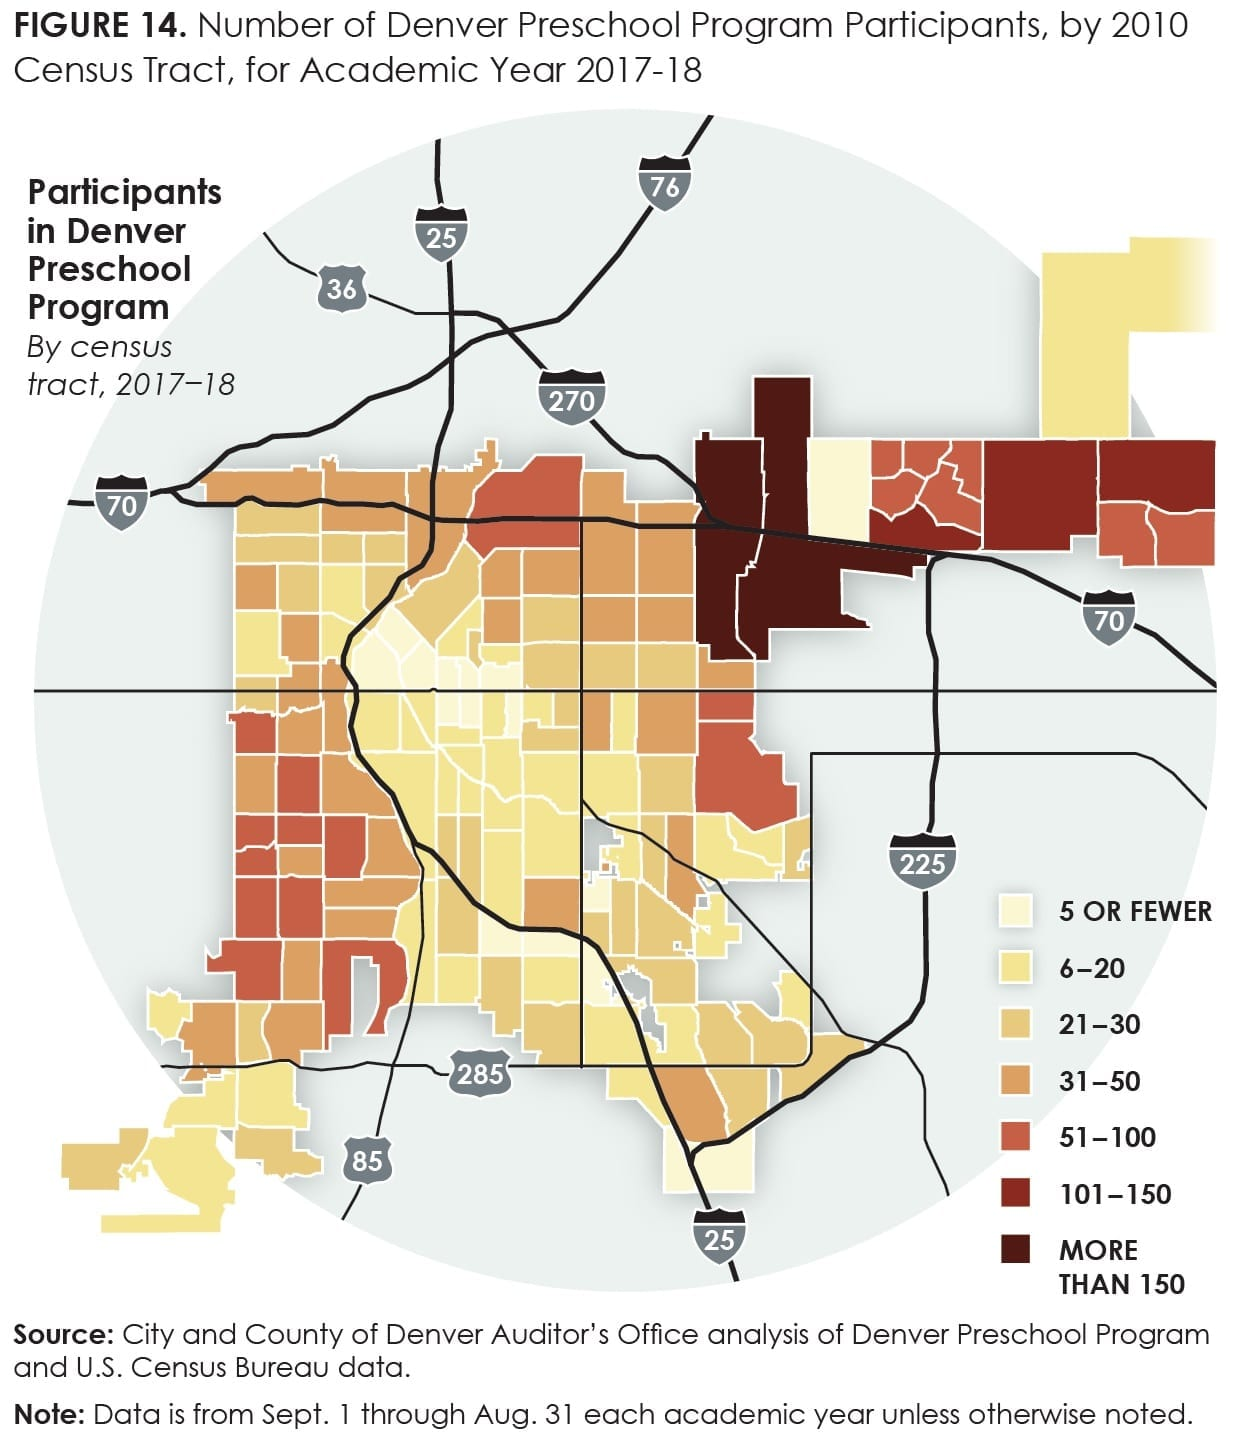 Figure14_Number of Denver Preschool Program Participants, by 2010 Census Tract, for Academic Year 2017-18